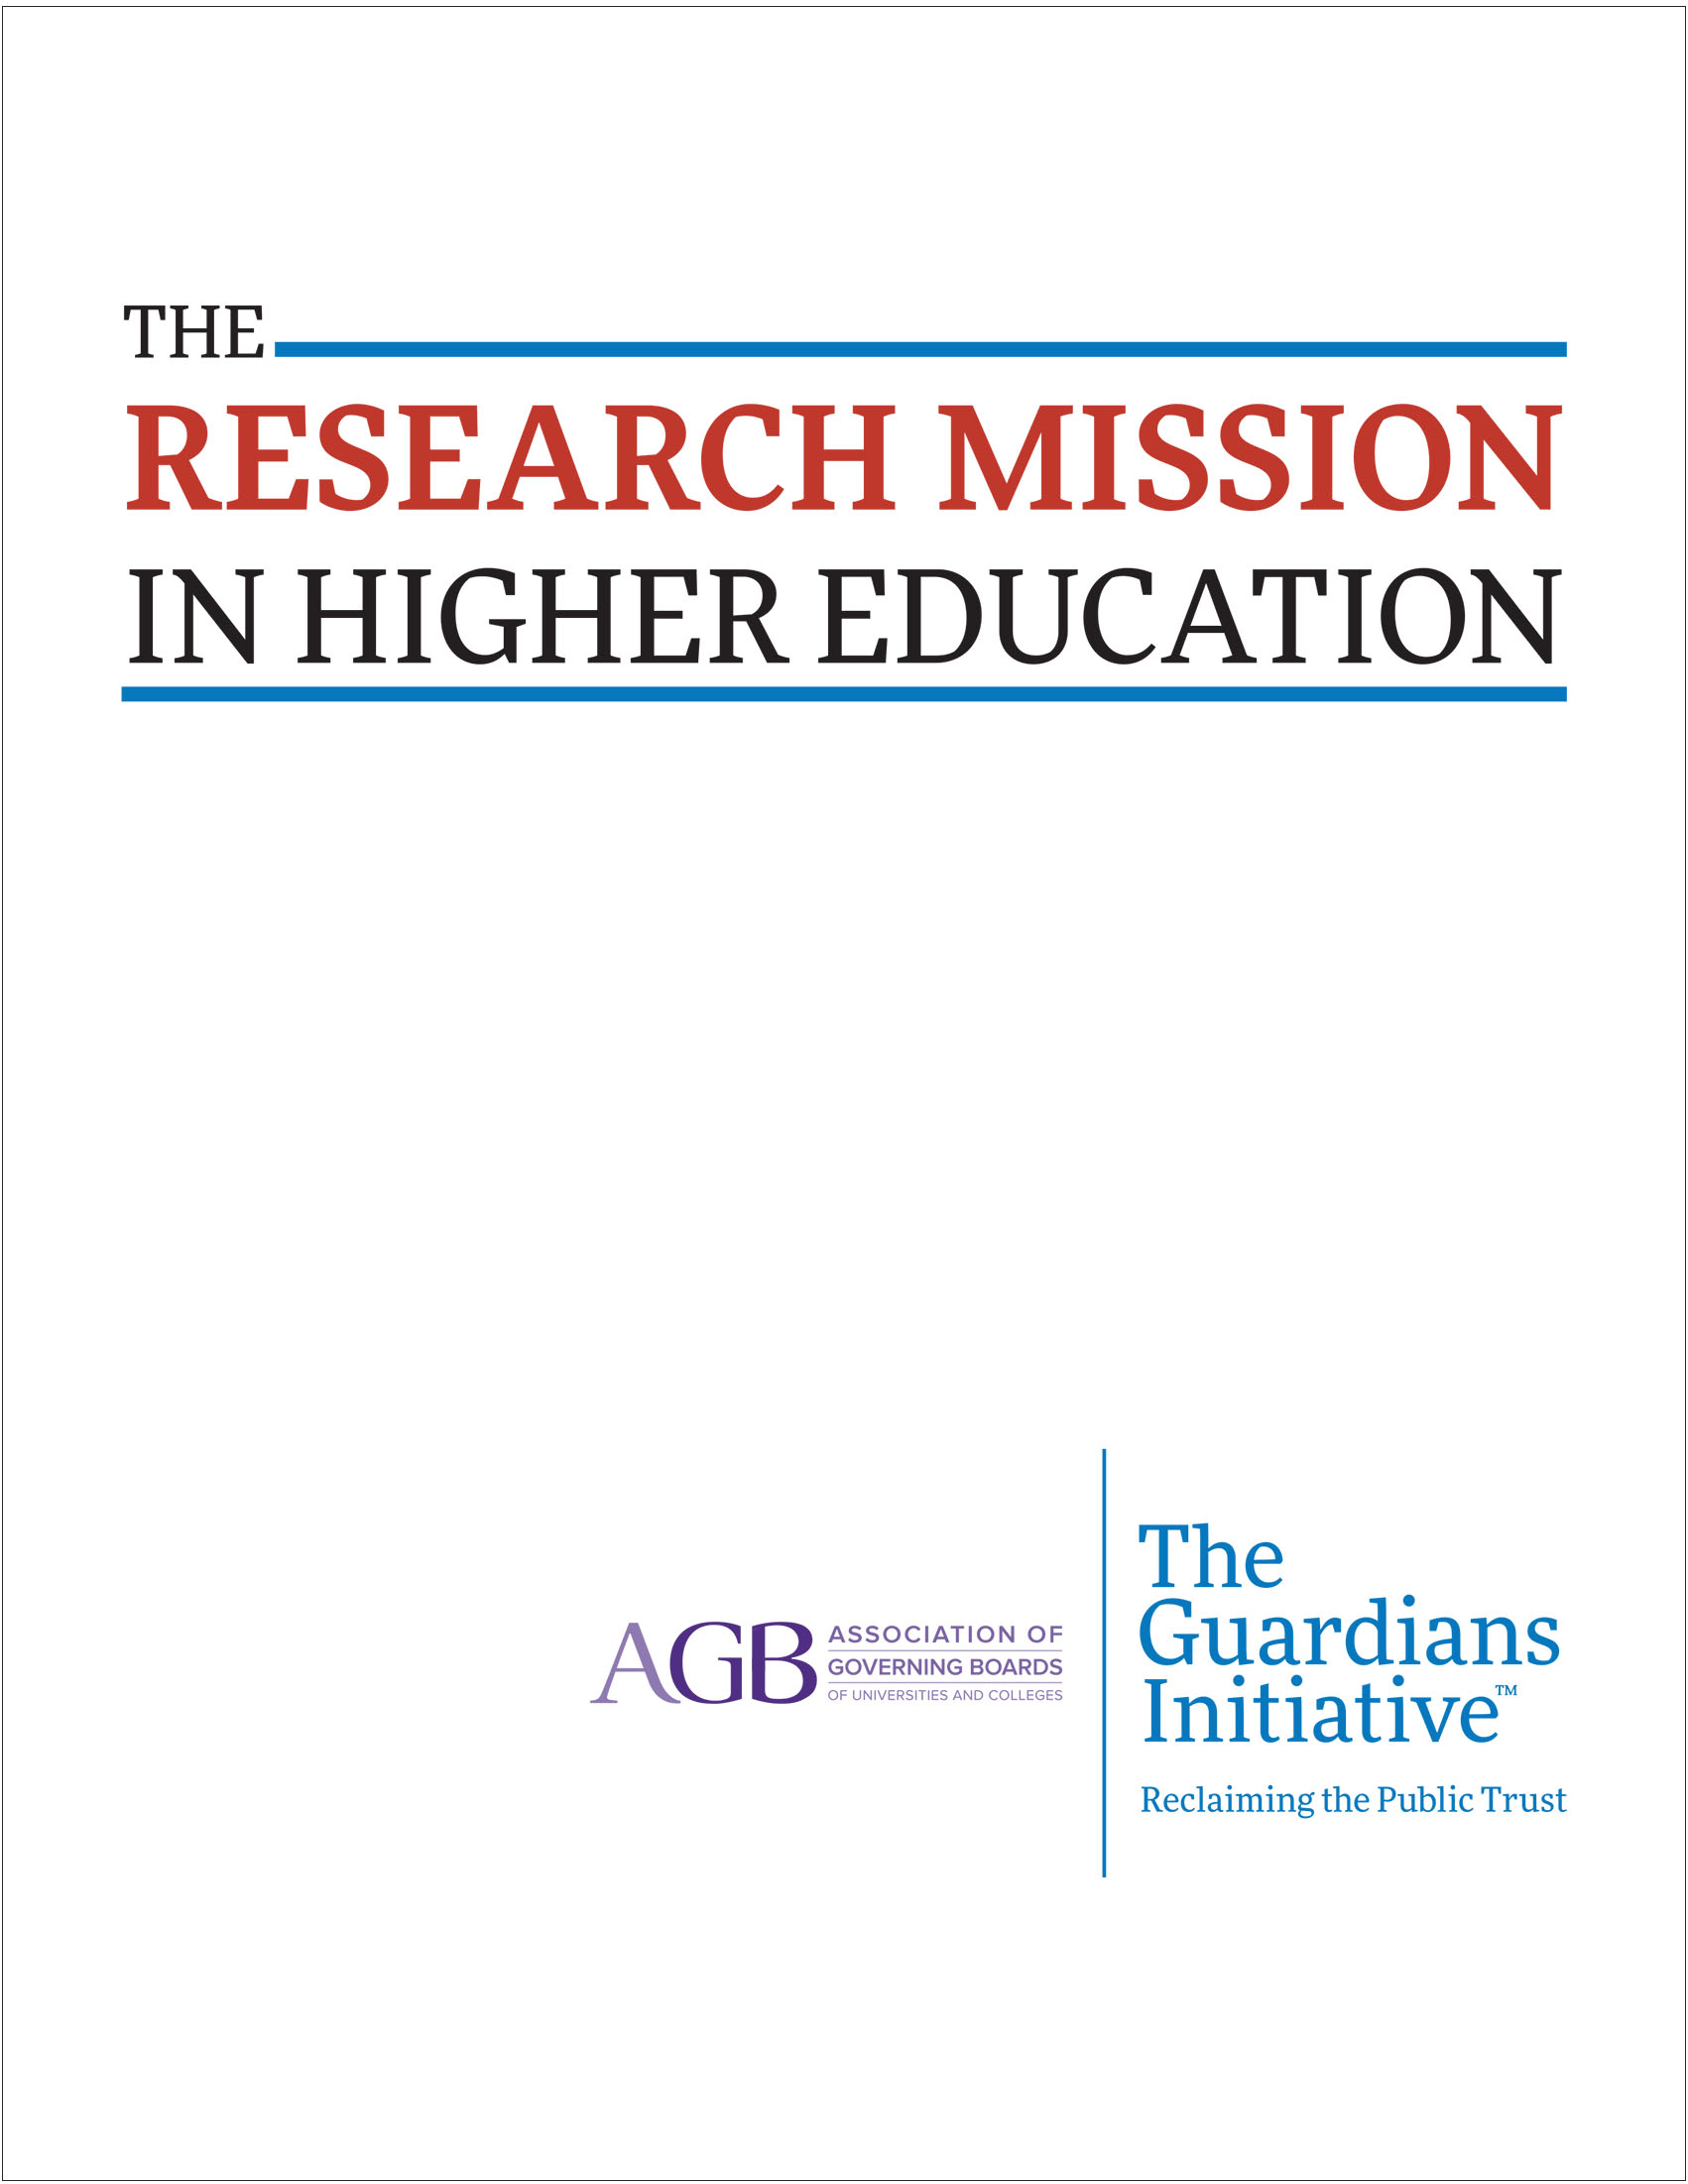 The Research Mission in Higher Education